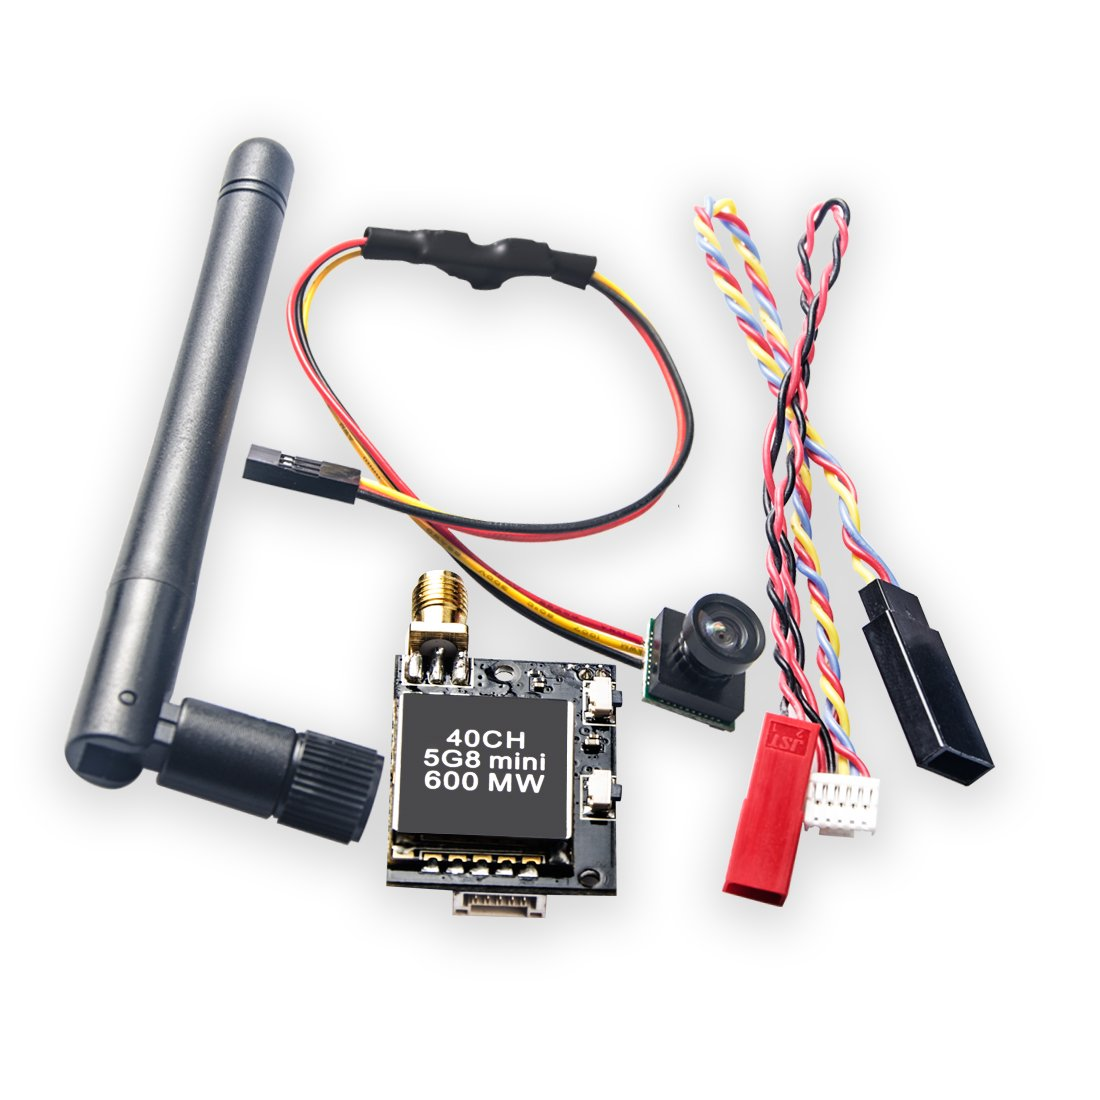 Attentionall Akk Products Overviews And New Arrivals First Look Fpv Wiring Diagram Kc02 40ch 600mw Transmitter With 600tvl 28mm 120 Degree High Picture Quality Sony Ccd Camera For Multicopter